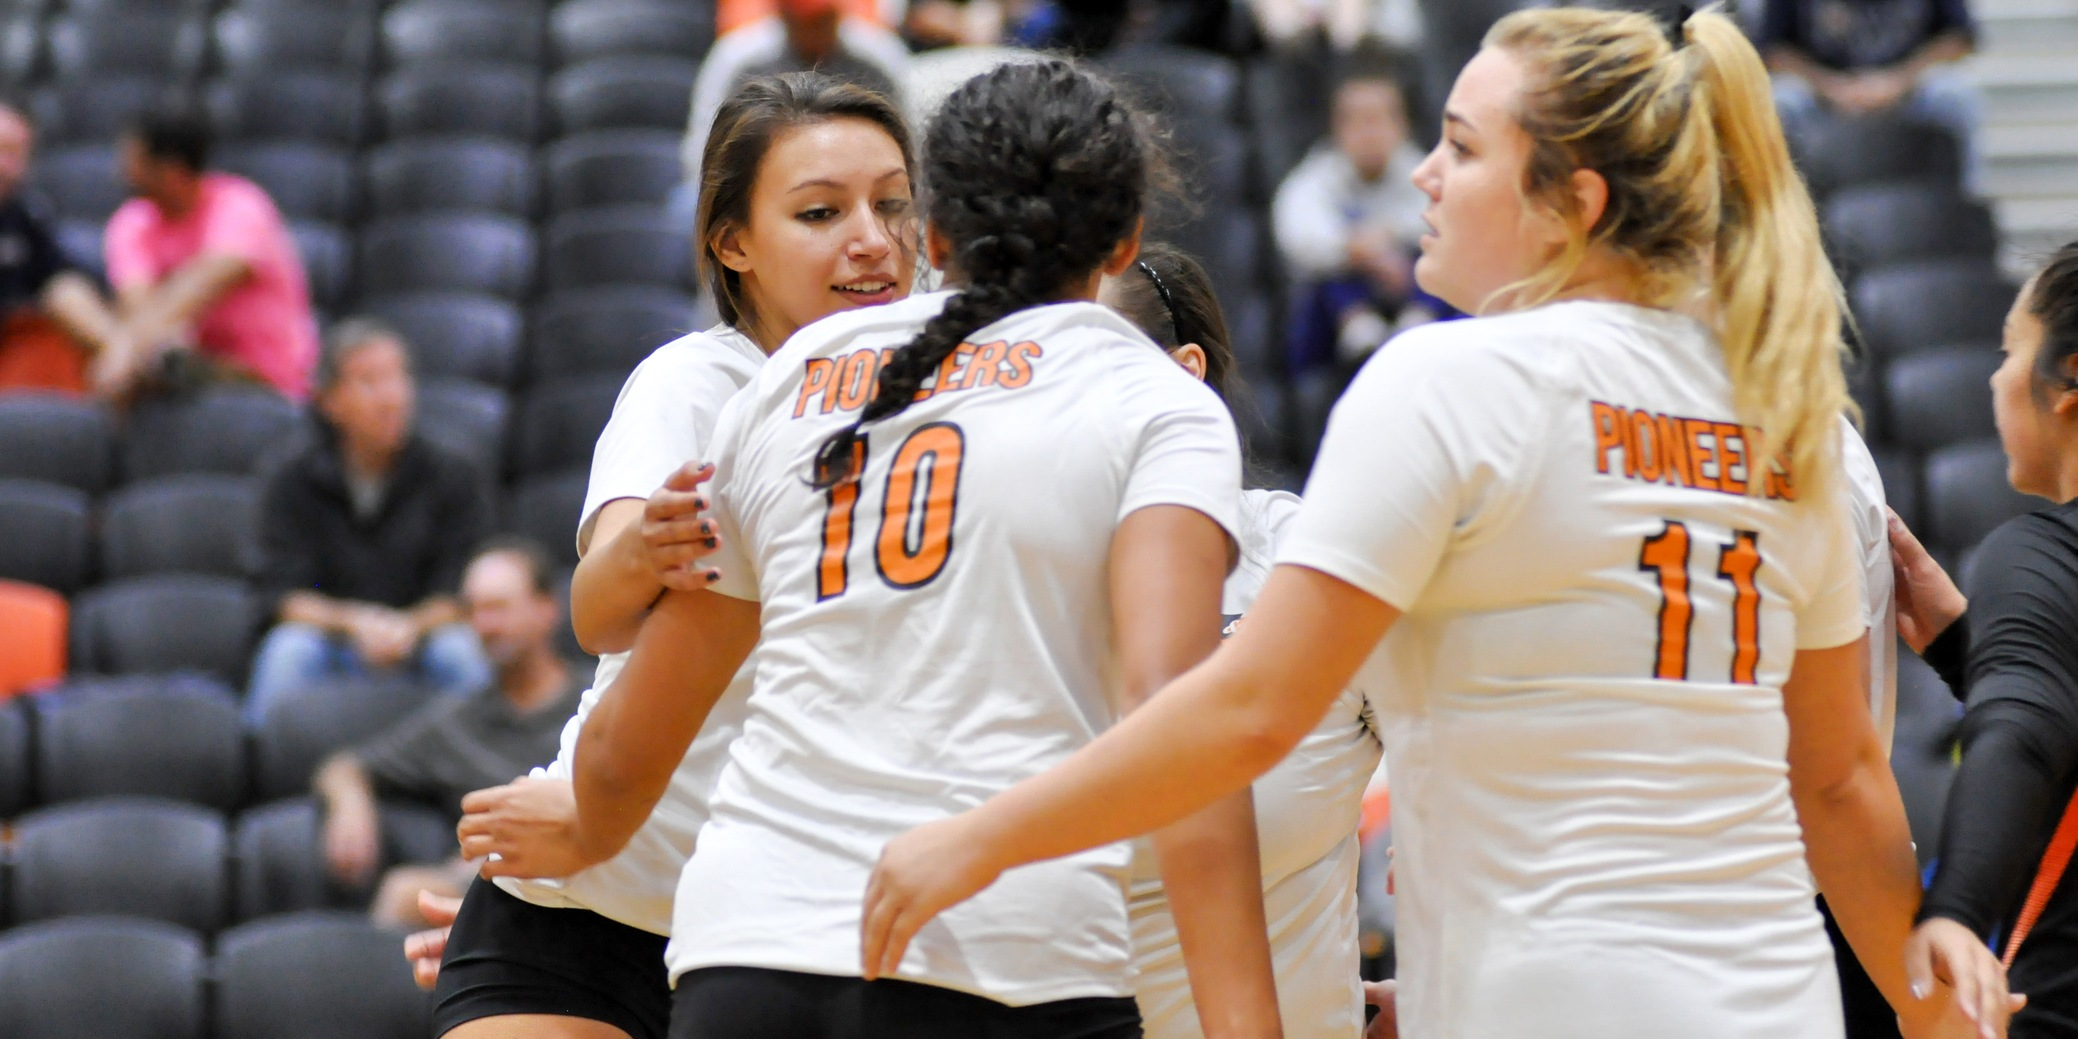 Pioneers lose in straight sets to PLU